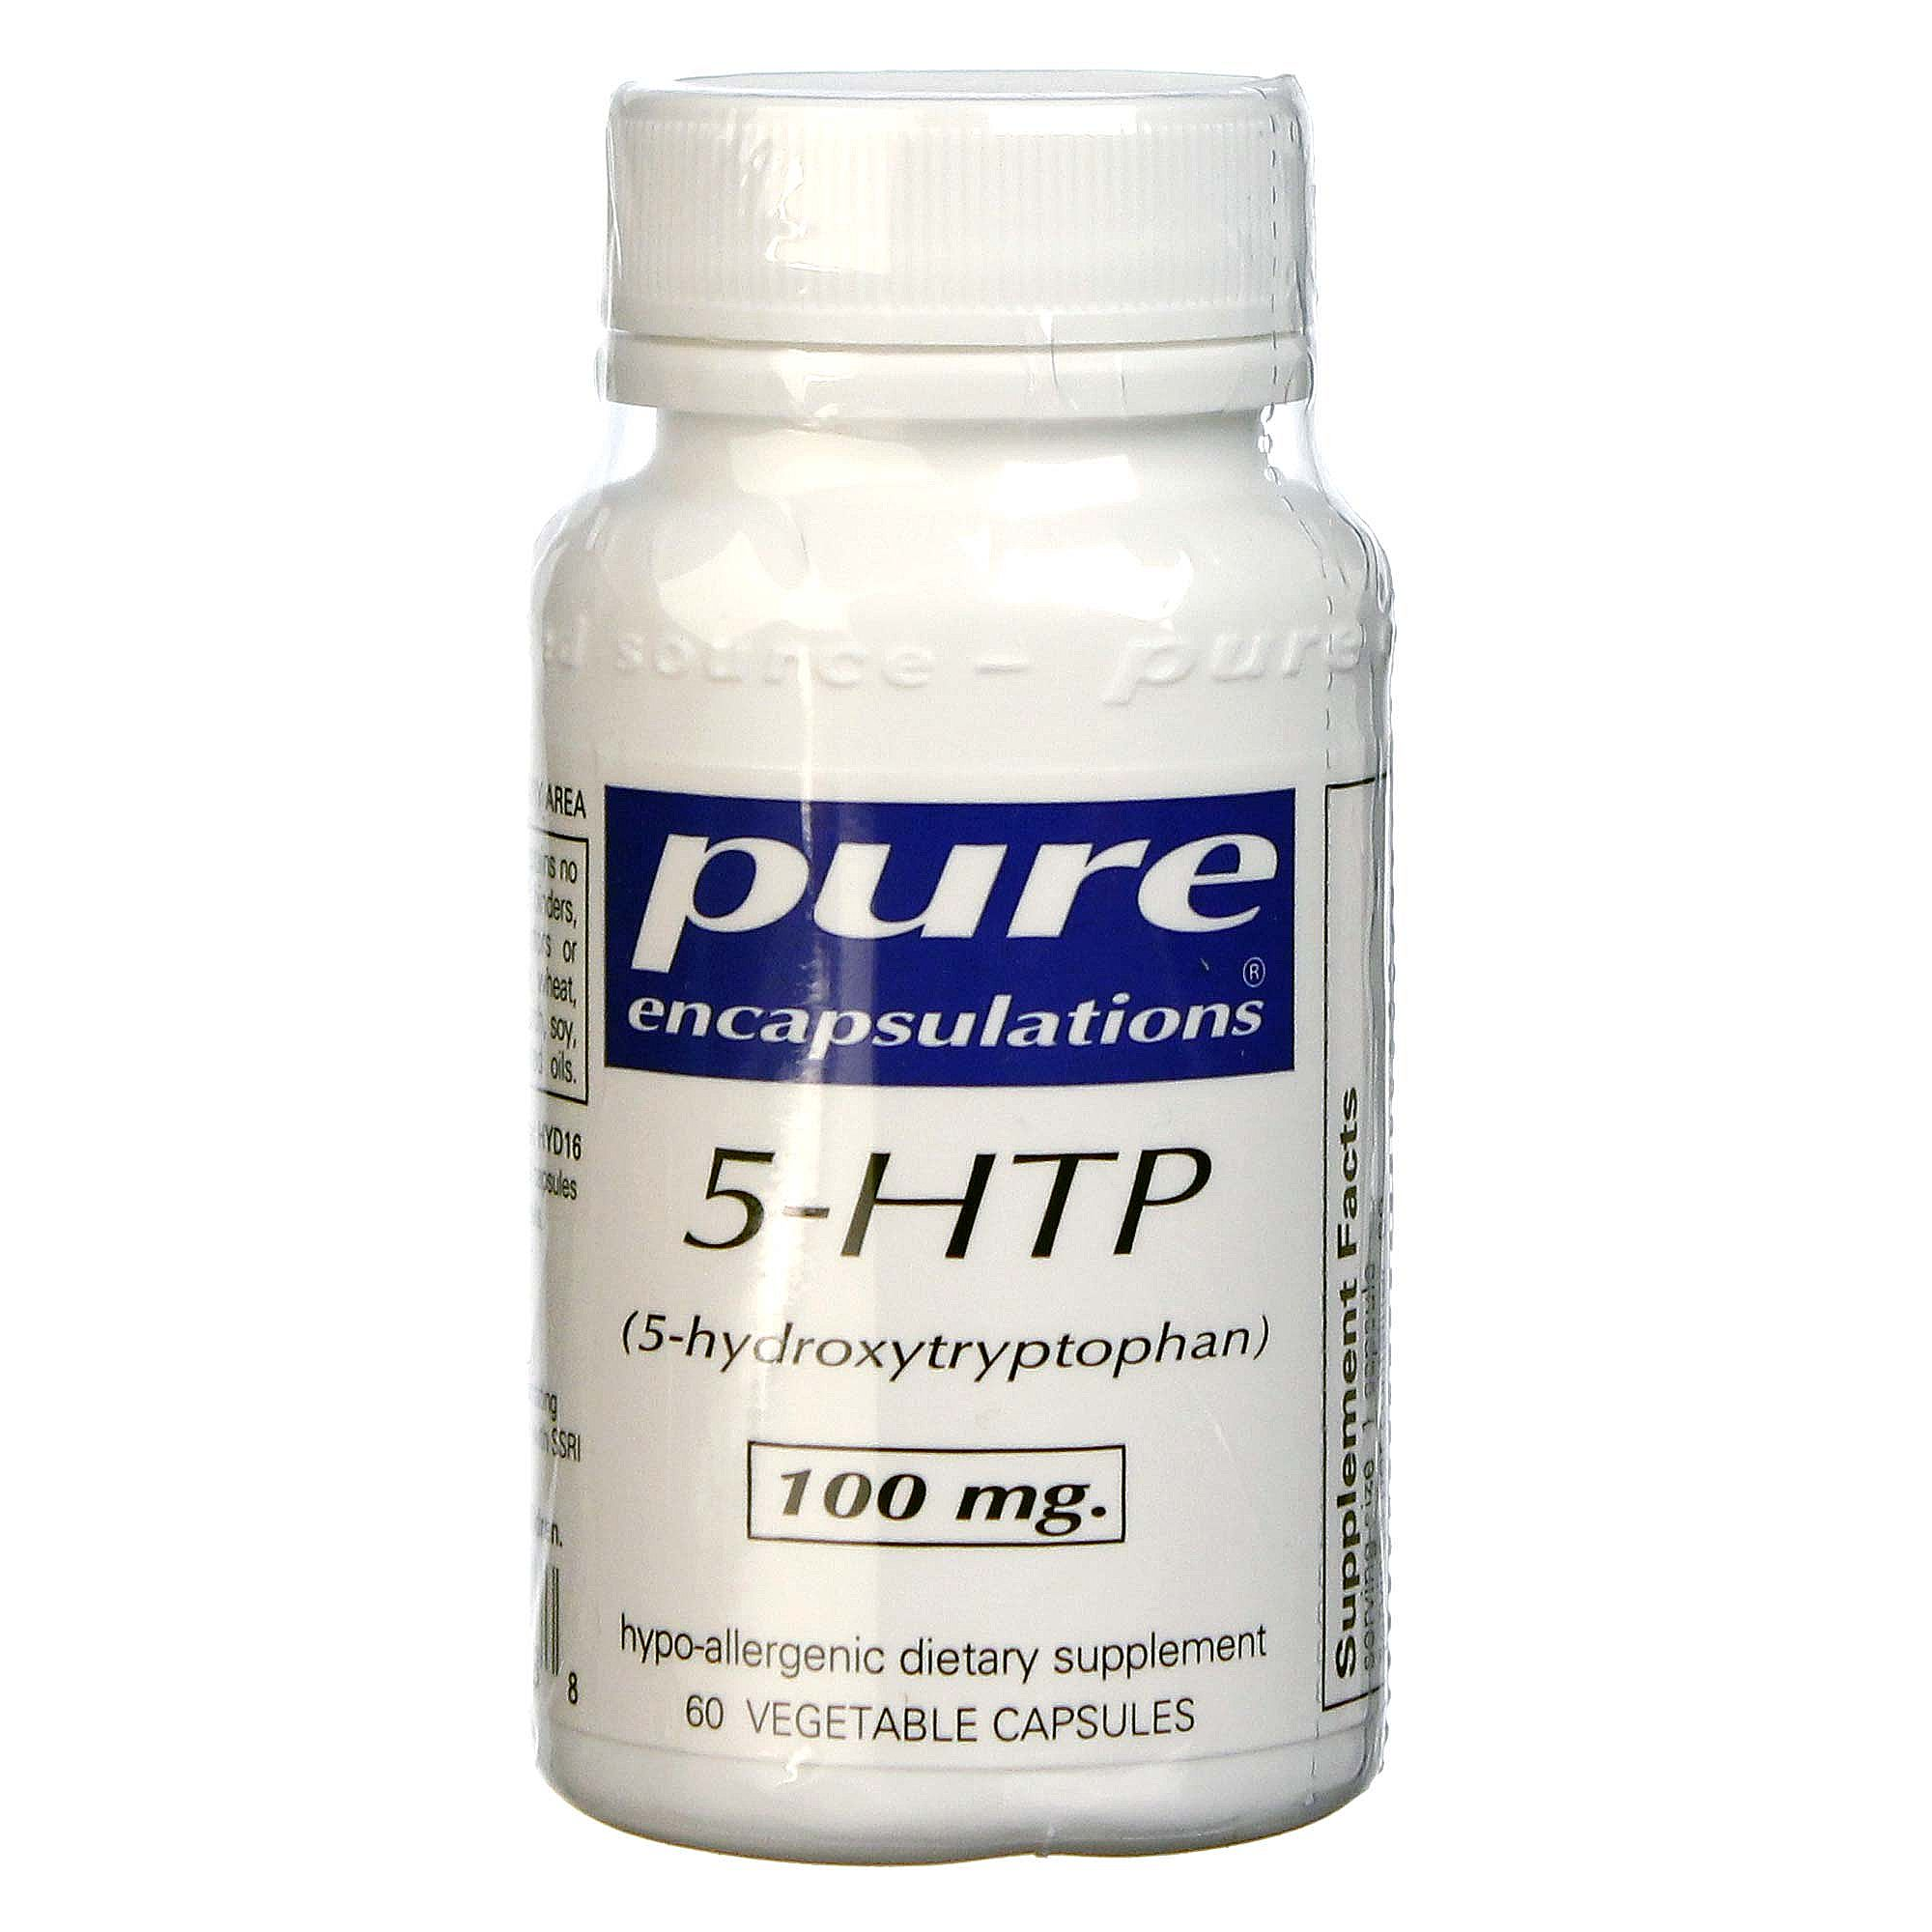 Htp 5 review